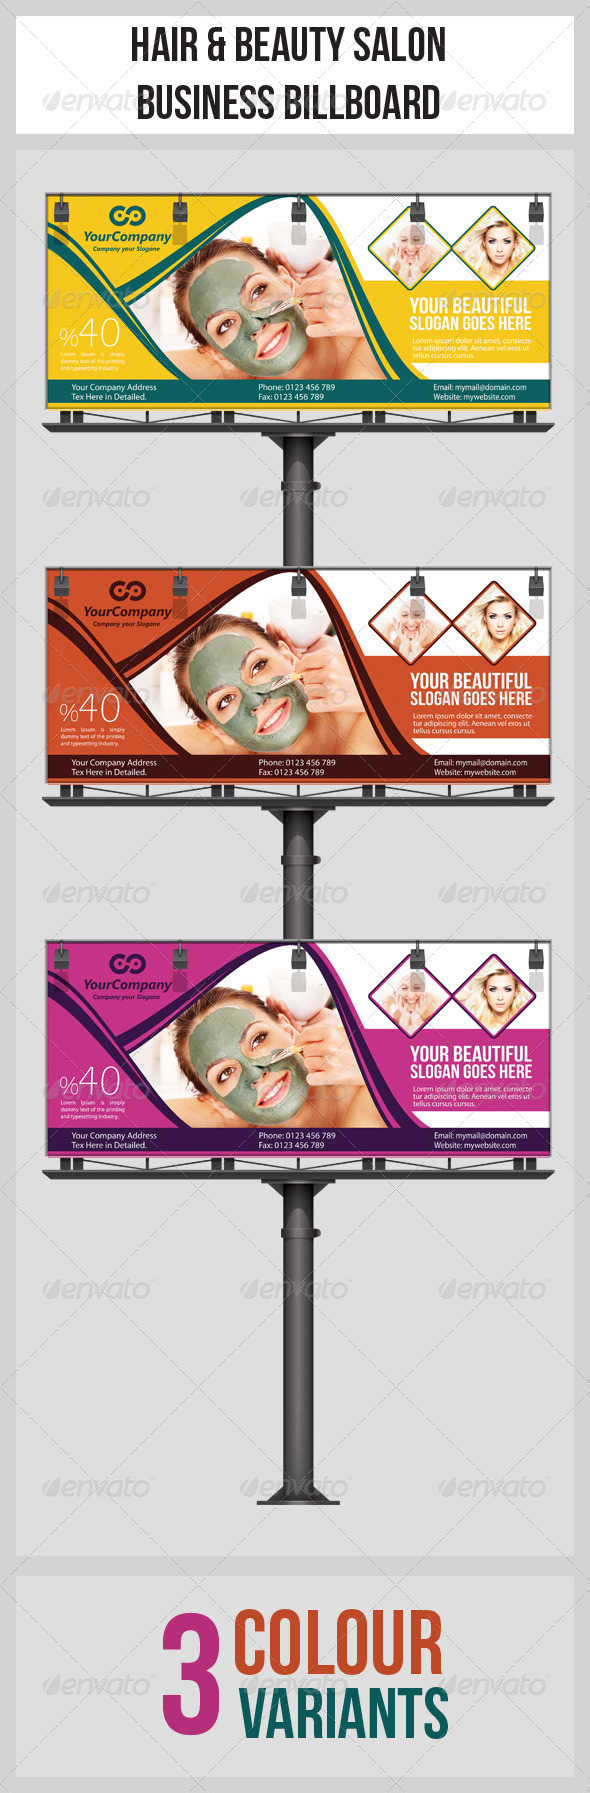 Hair & Beauty Salon Business Billboard  - Signage Print Templates